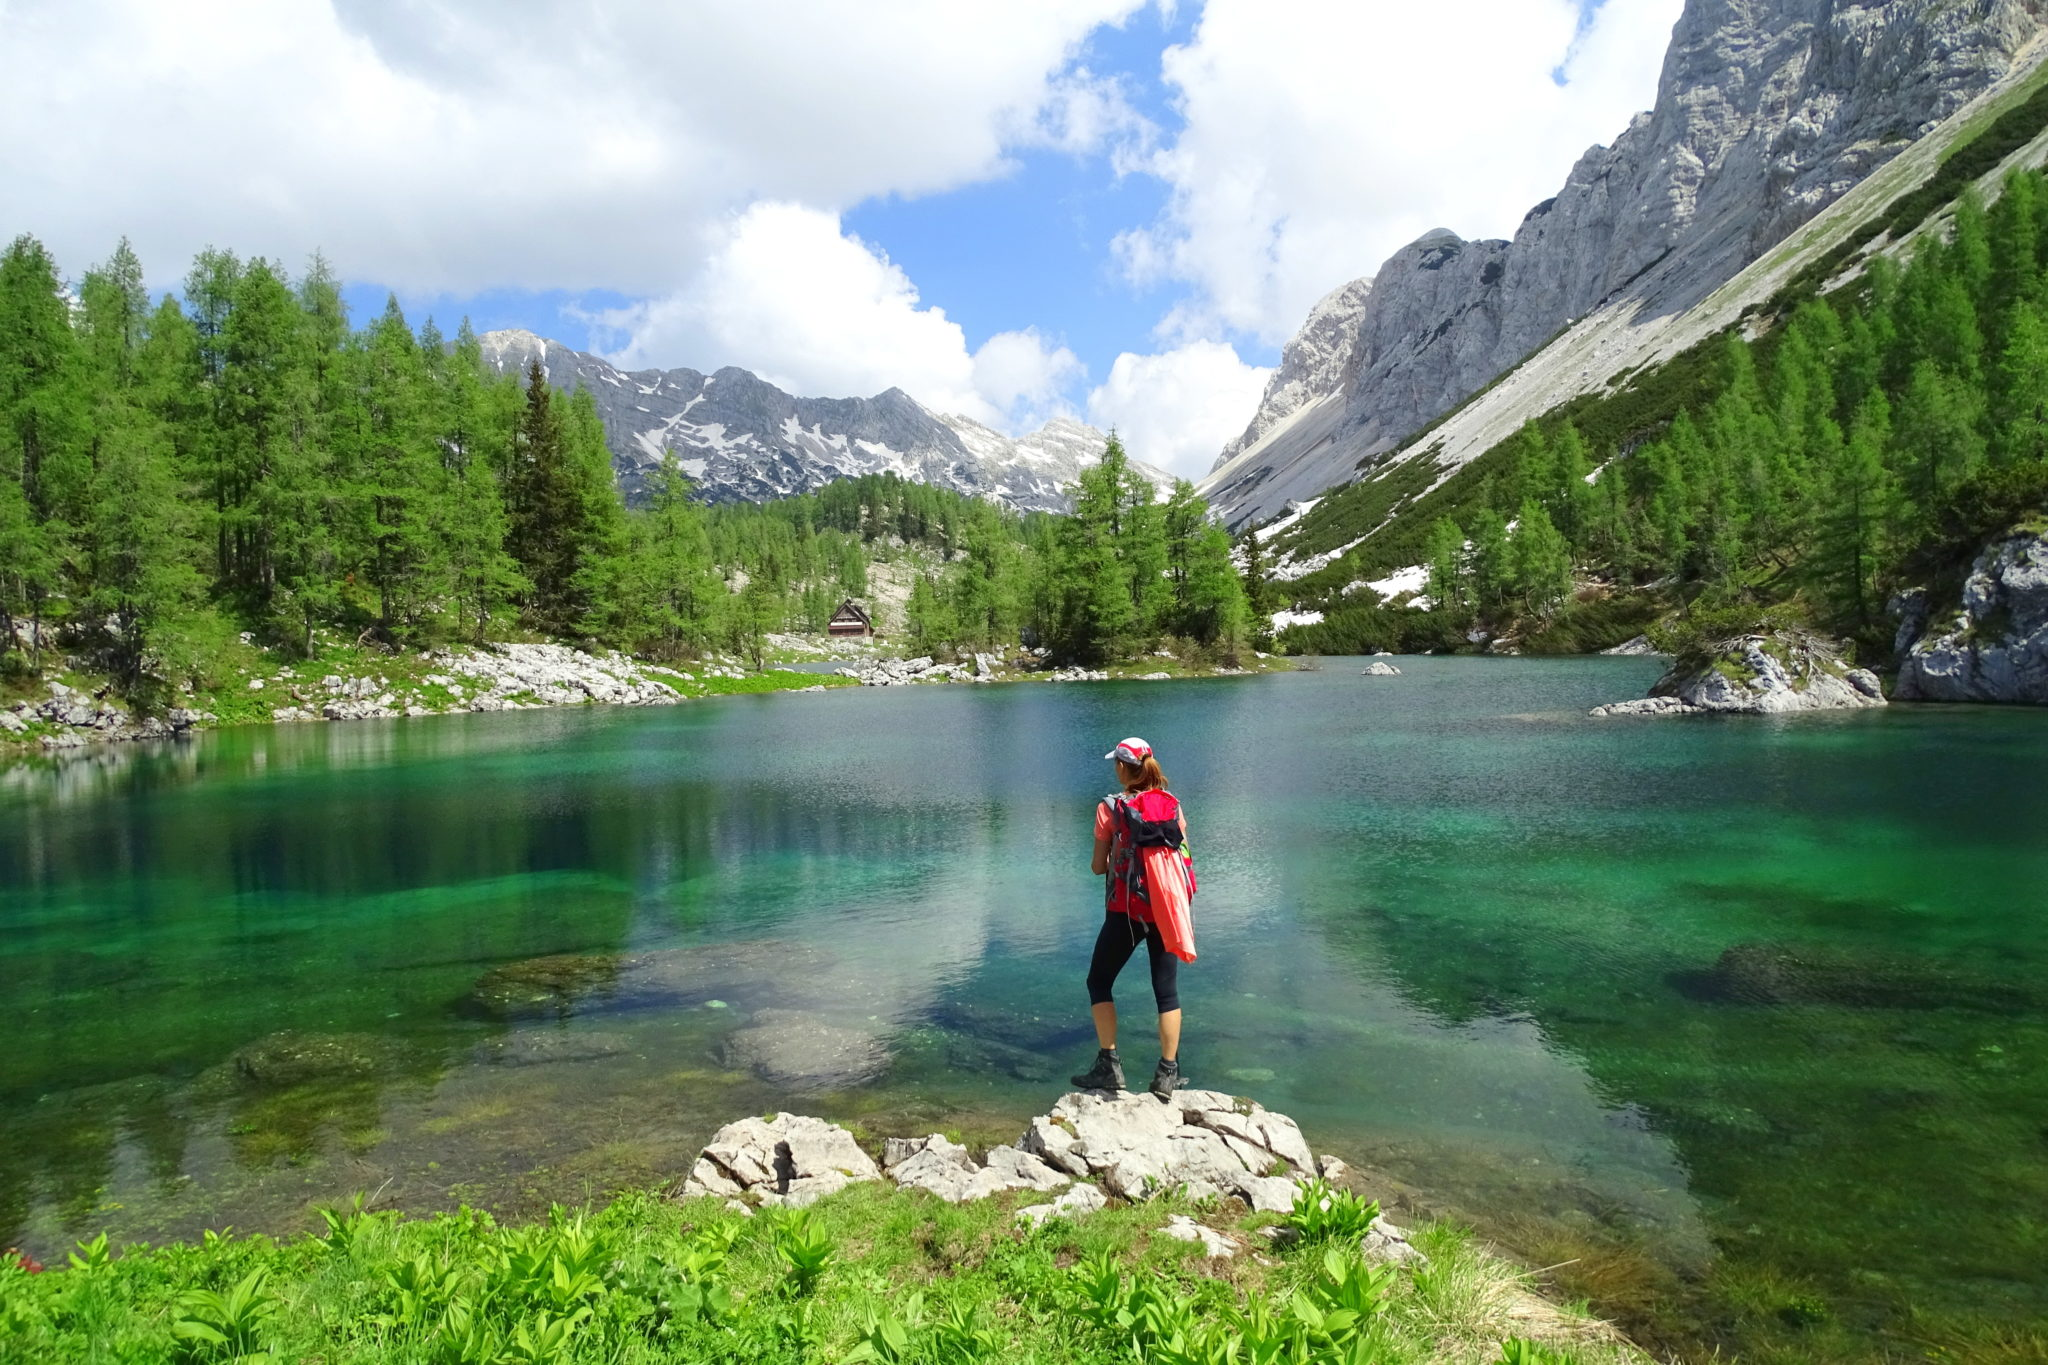 The Double Lake, Triglav Lakes, Julian Alps, Slovenia